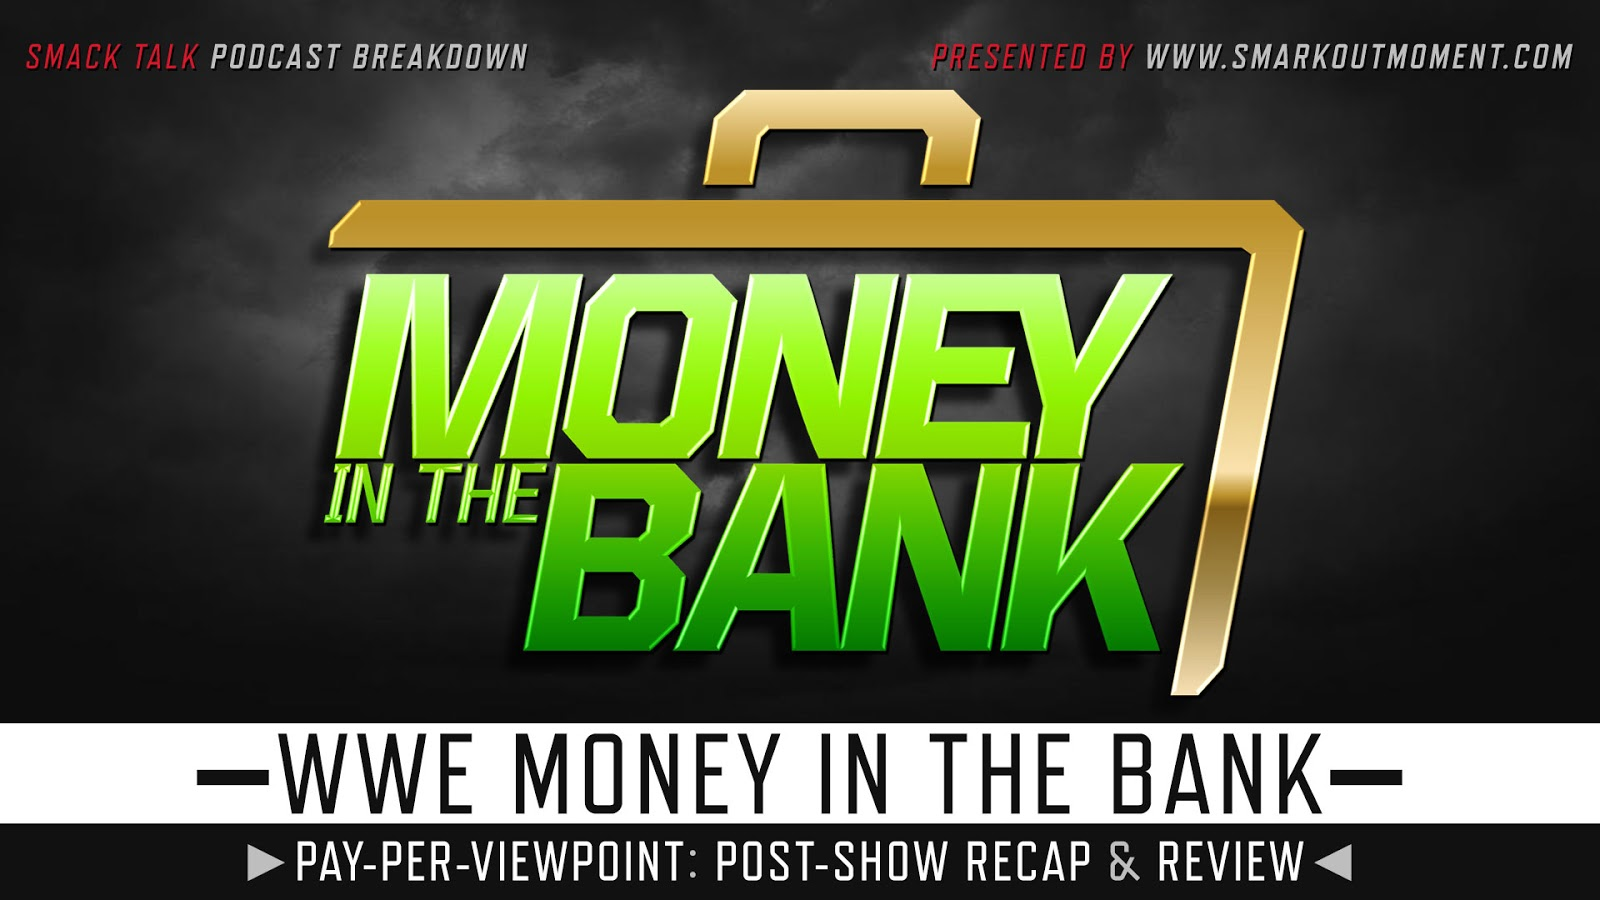 WWE Money in the Bank 2018 Recap and Review Podcast